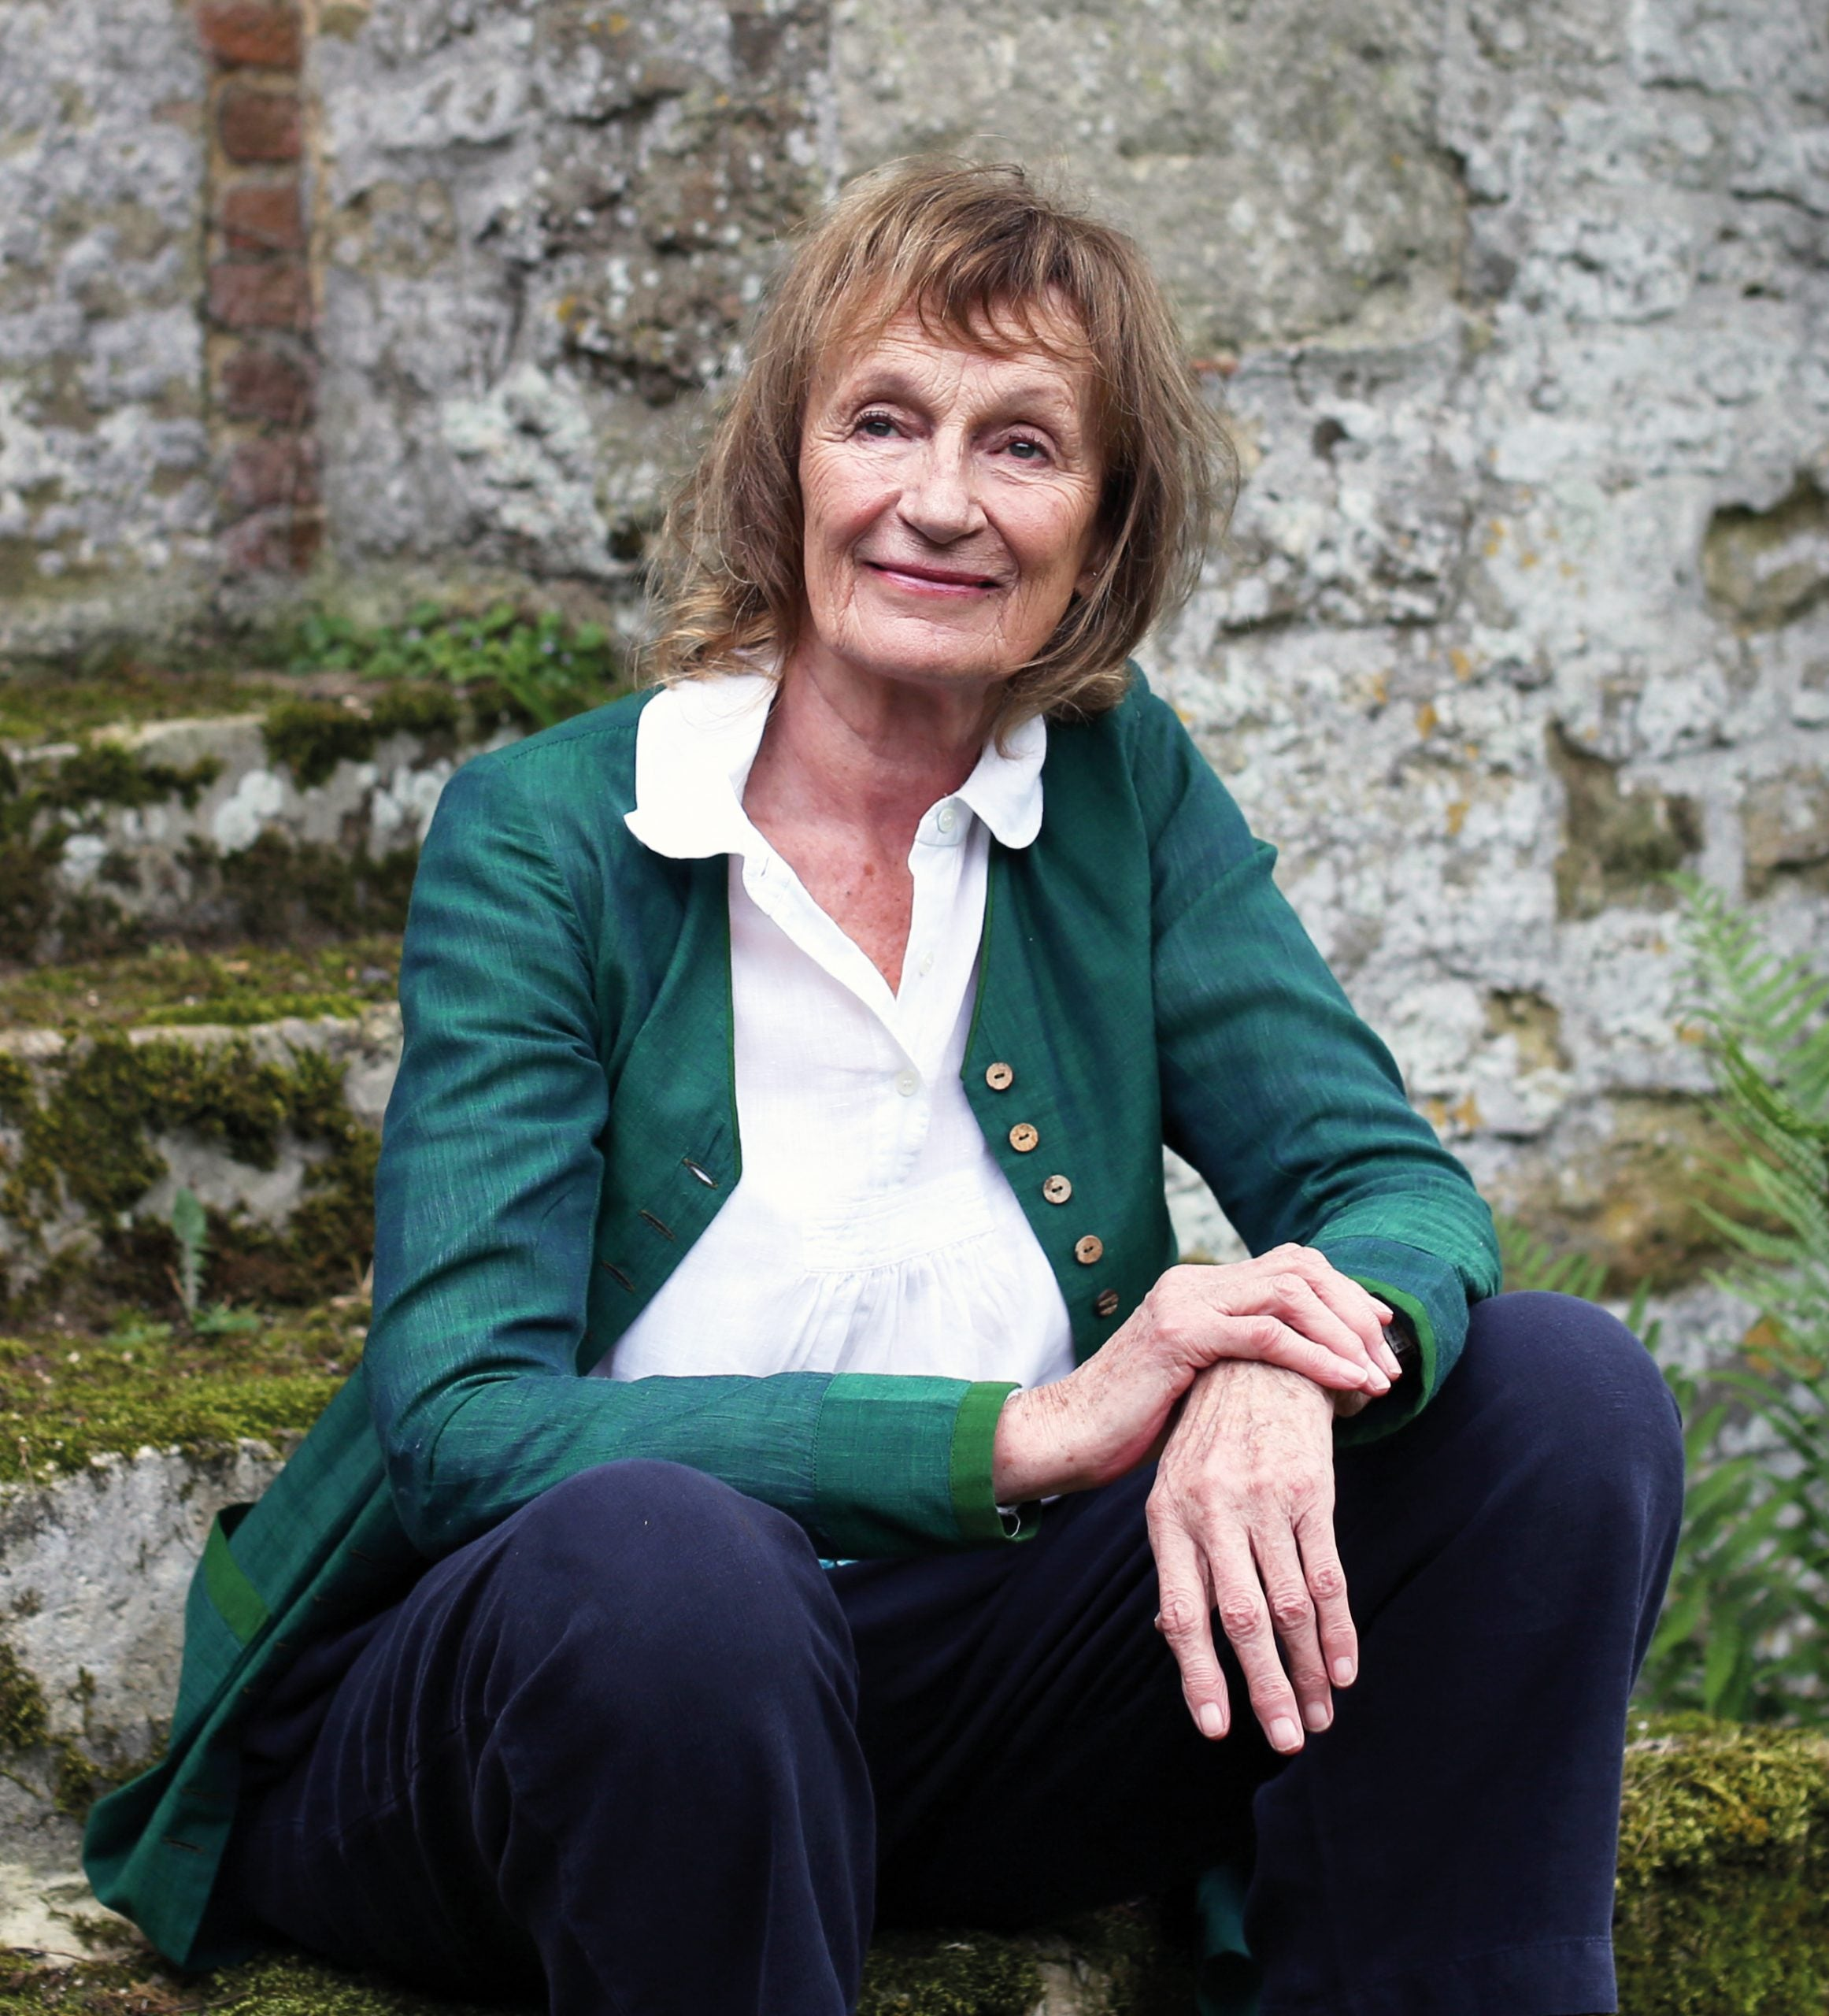 A trip with the acid countess: Amanda Feilding and the medical case for drugs reform